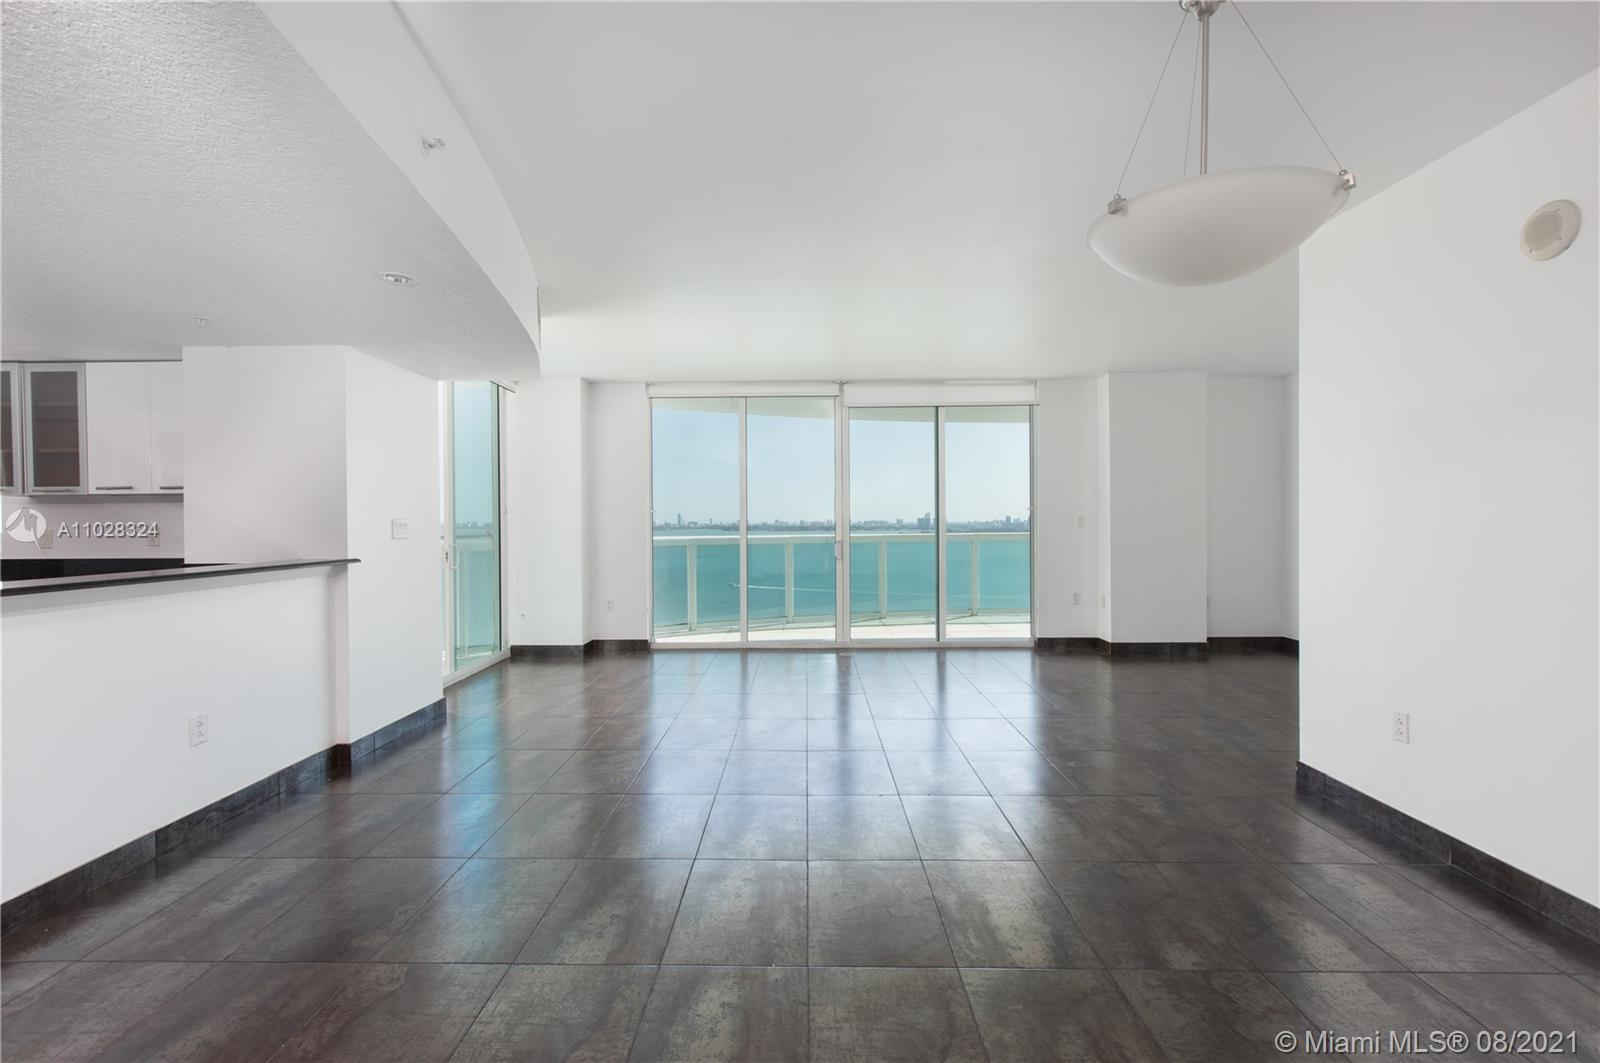 Best line in the building with direct views to the bay and the ocean of South Beach. 3 bedrooms 3 baths with 638Sqft in terraces. Located in front of Margaret Pace Park, close to supermarket, cafes and restaurants. 2 PARKING GARAGES located in the 5th floor. New shower glass and accessories in the three bathrooms, new white cabinetry in the kitchen.